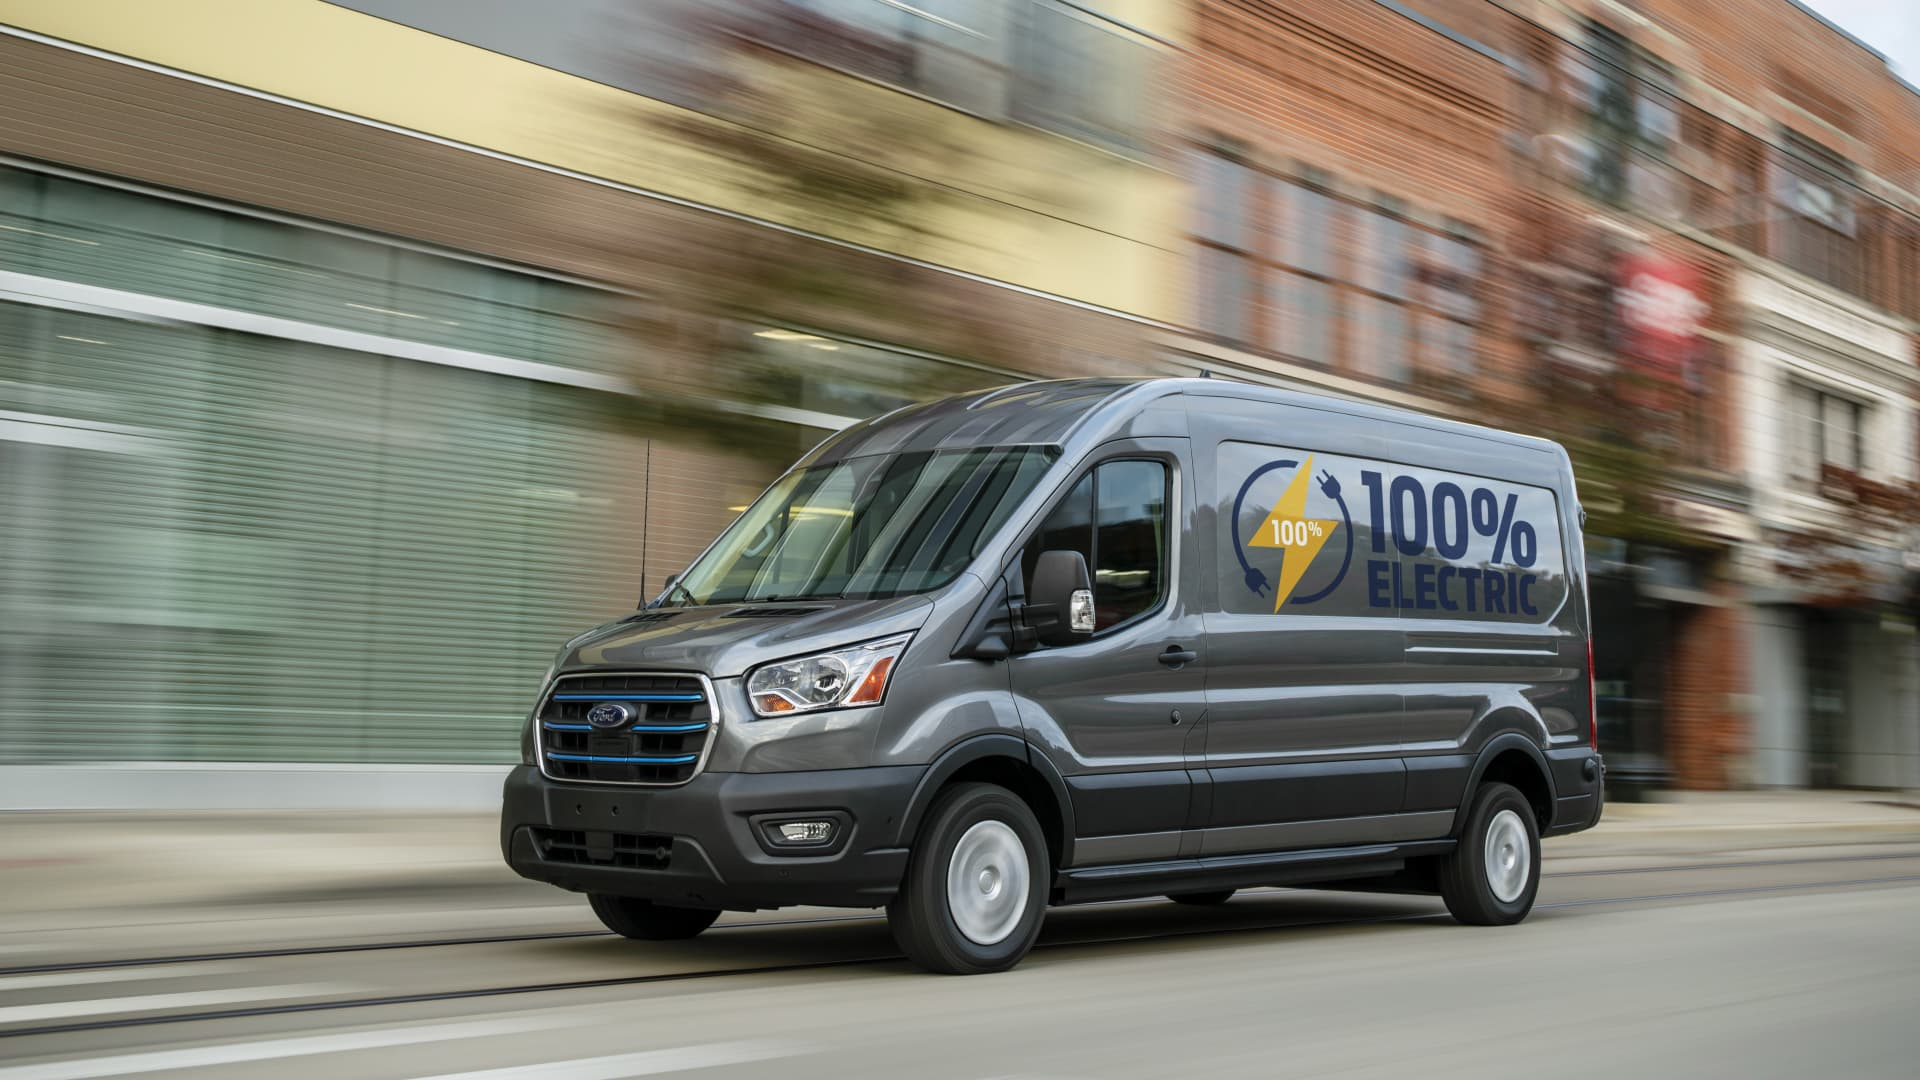 Ford unveiled its new all-electric Transit van on Nov. 12, 2020.